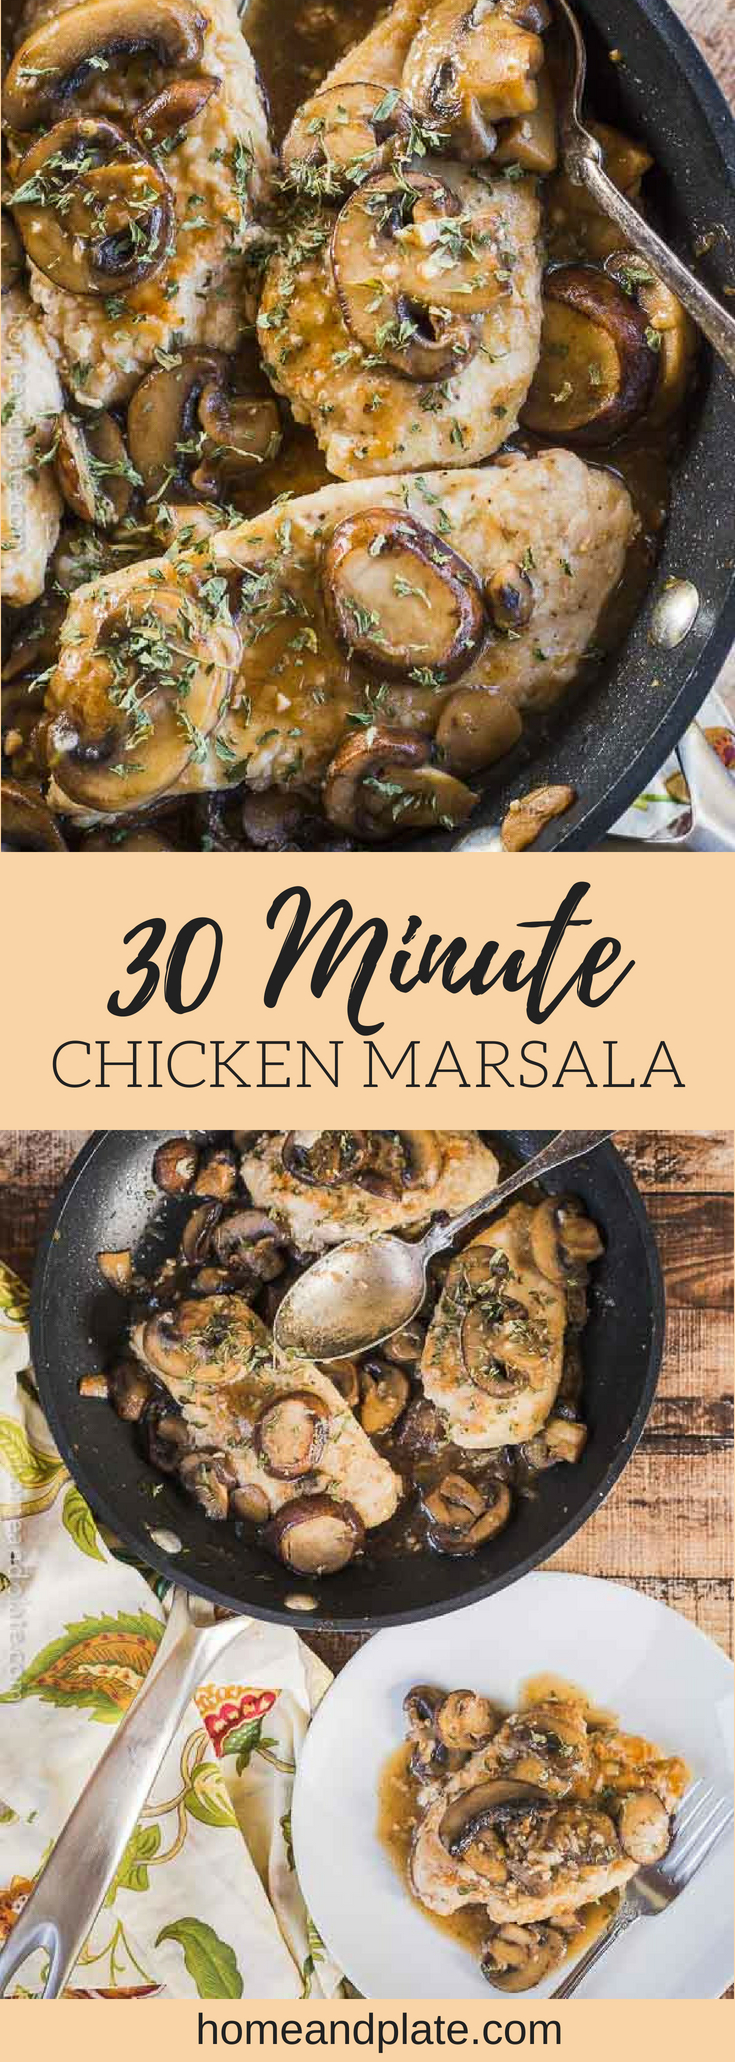 Easy 30 Minute Chicken Marsala | This easy chicken marsala is my go-to dish for a midweek meal and it can be whipped up in under 30 minutes. #chickenmarsala #skilletchicken #chickenwithmushrooms